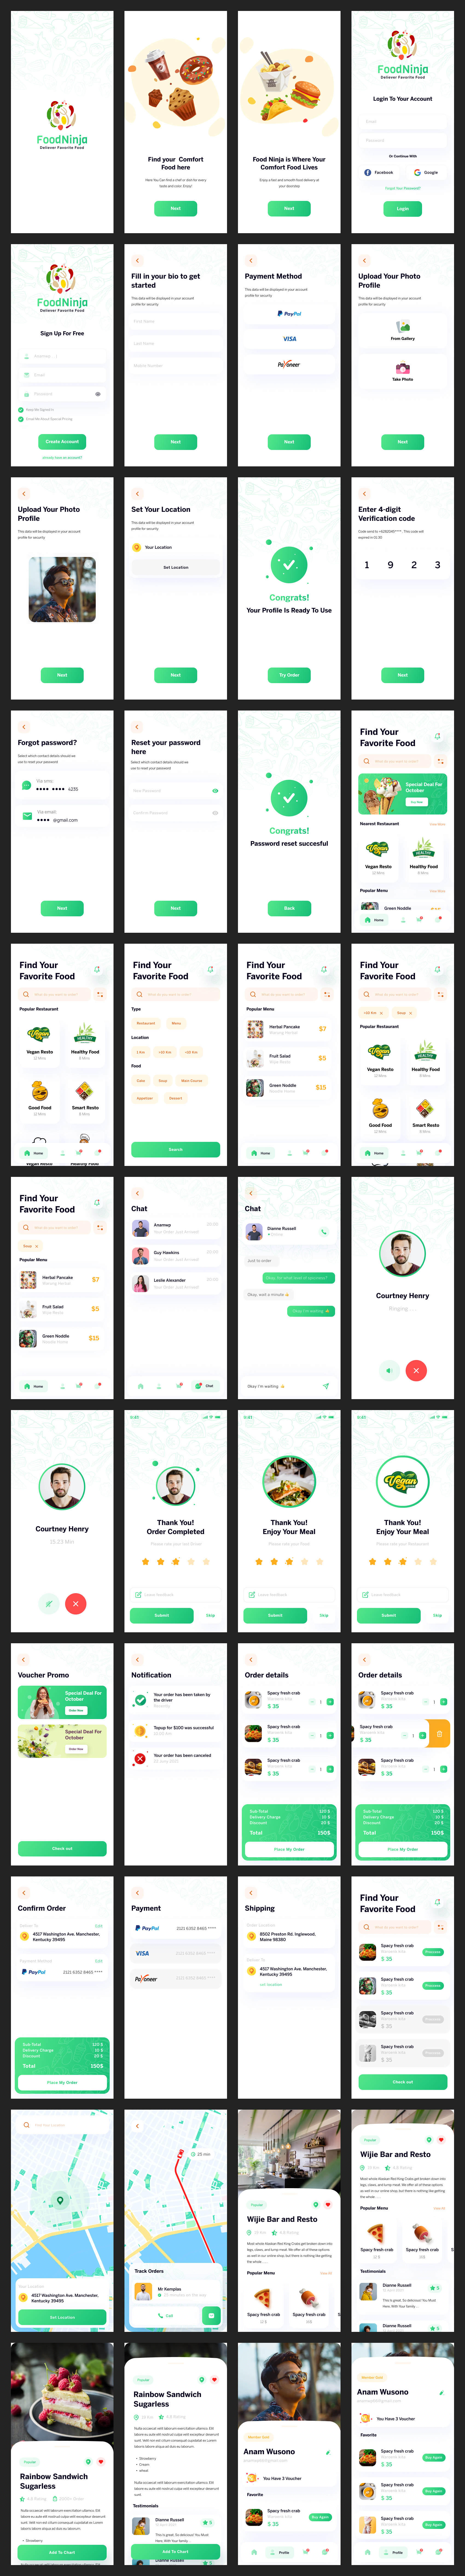 Food Delivery Free UI Kit - 80+ super clean and green awesome screens perfect for healthy addicts, free to download for commercial and personal purposes.